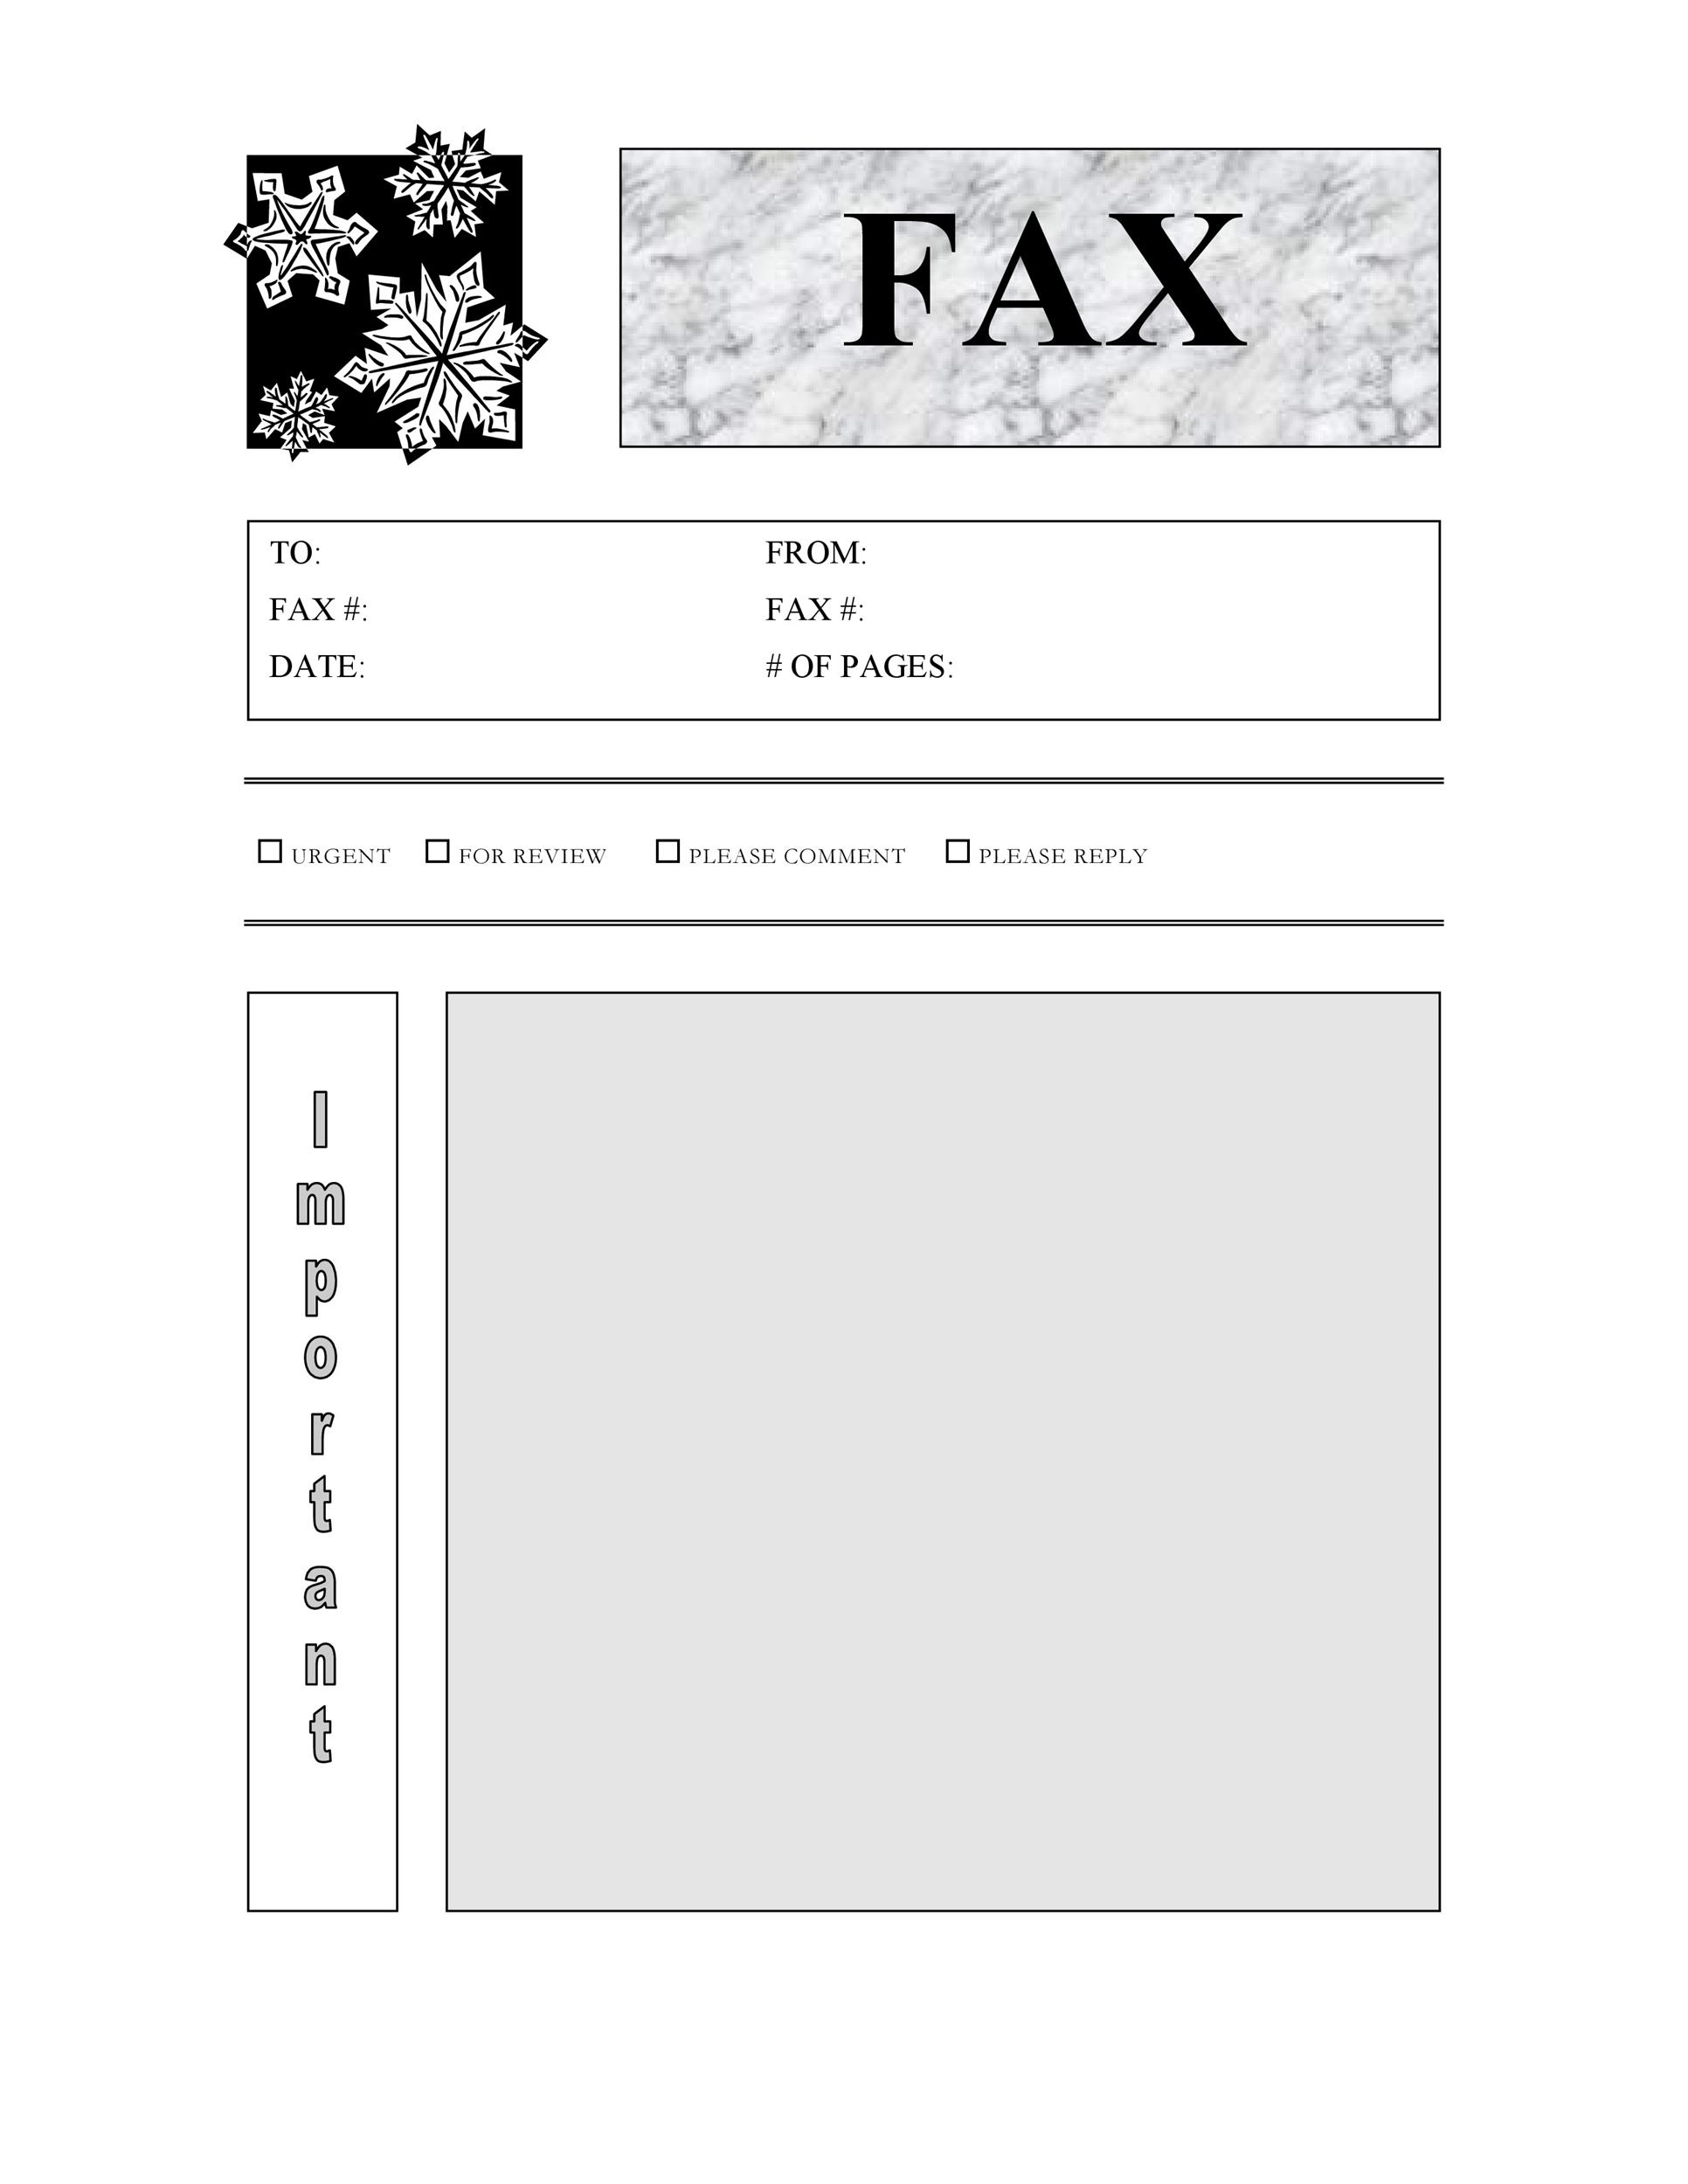 fax cover sheet template 16 - Fax Cover Letter Template Microsoft Word